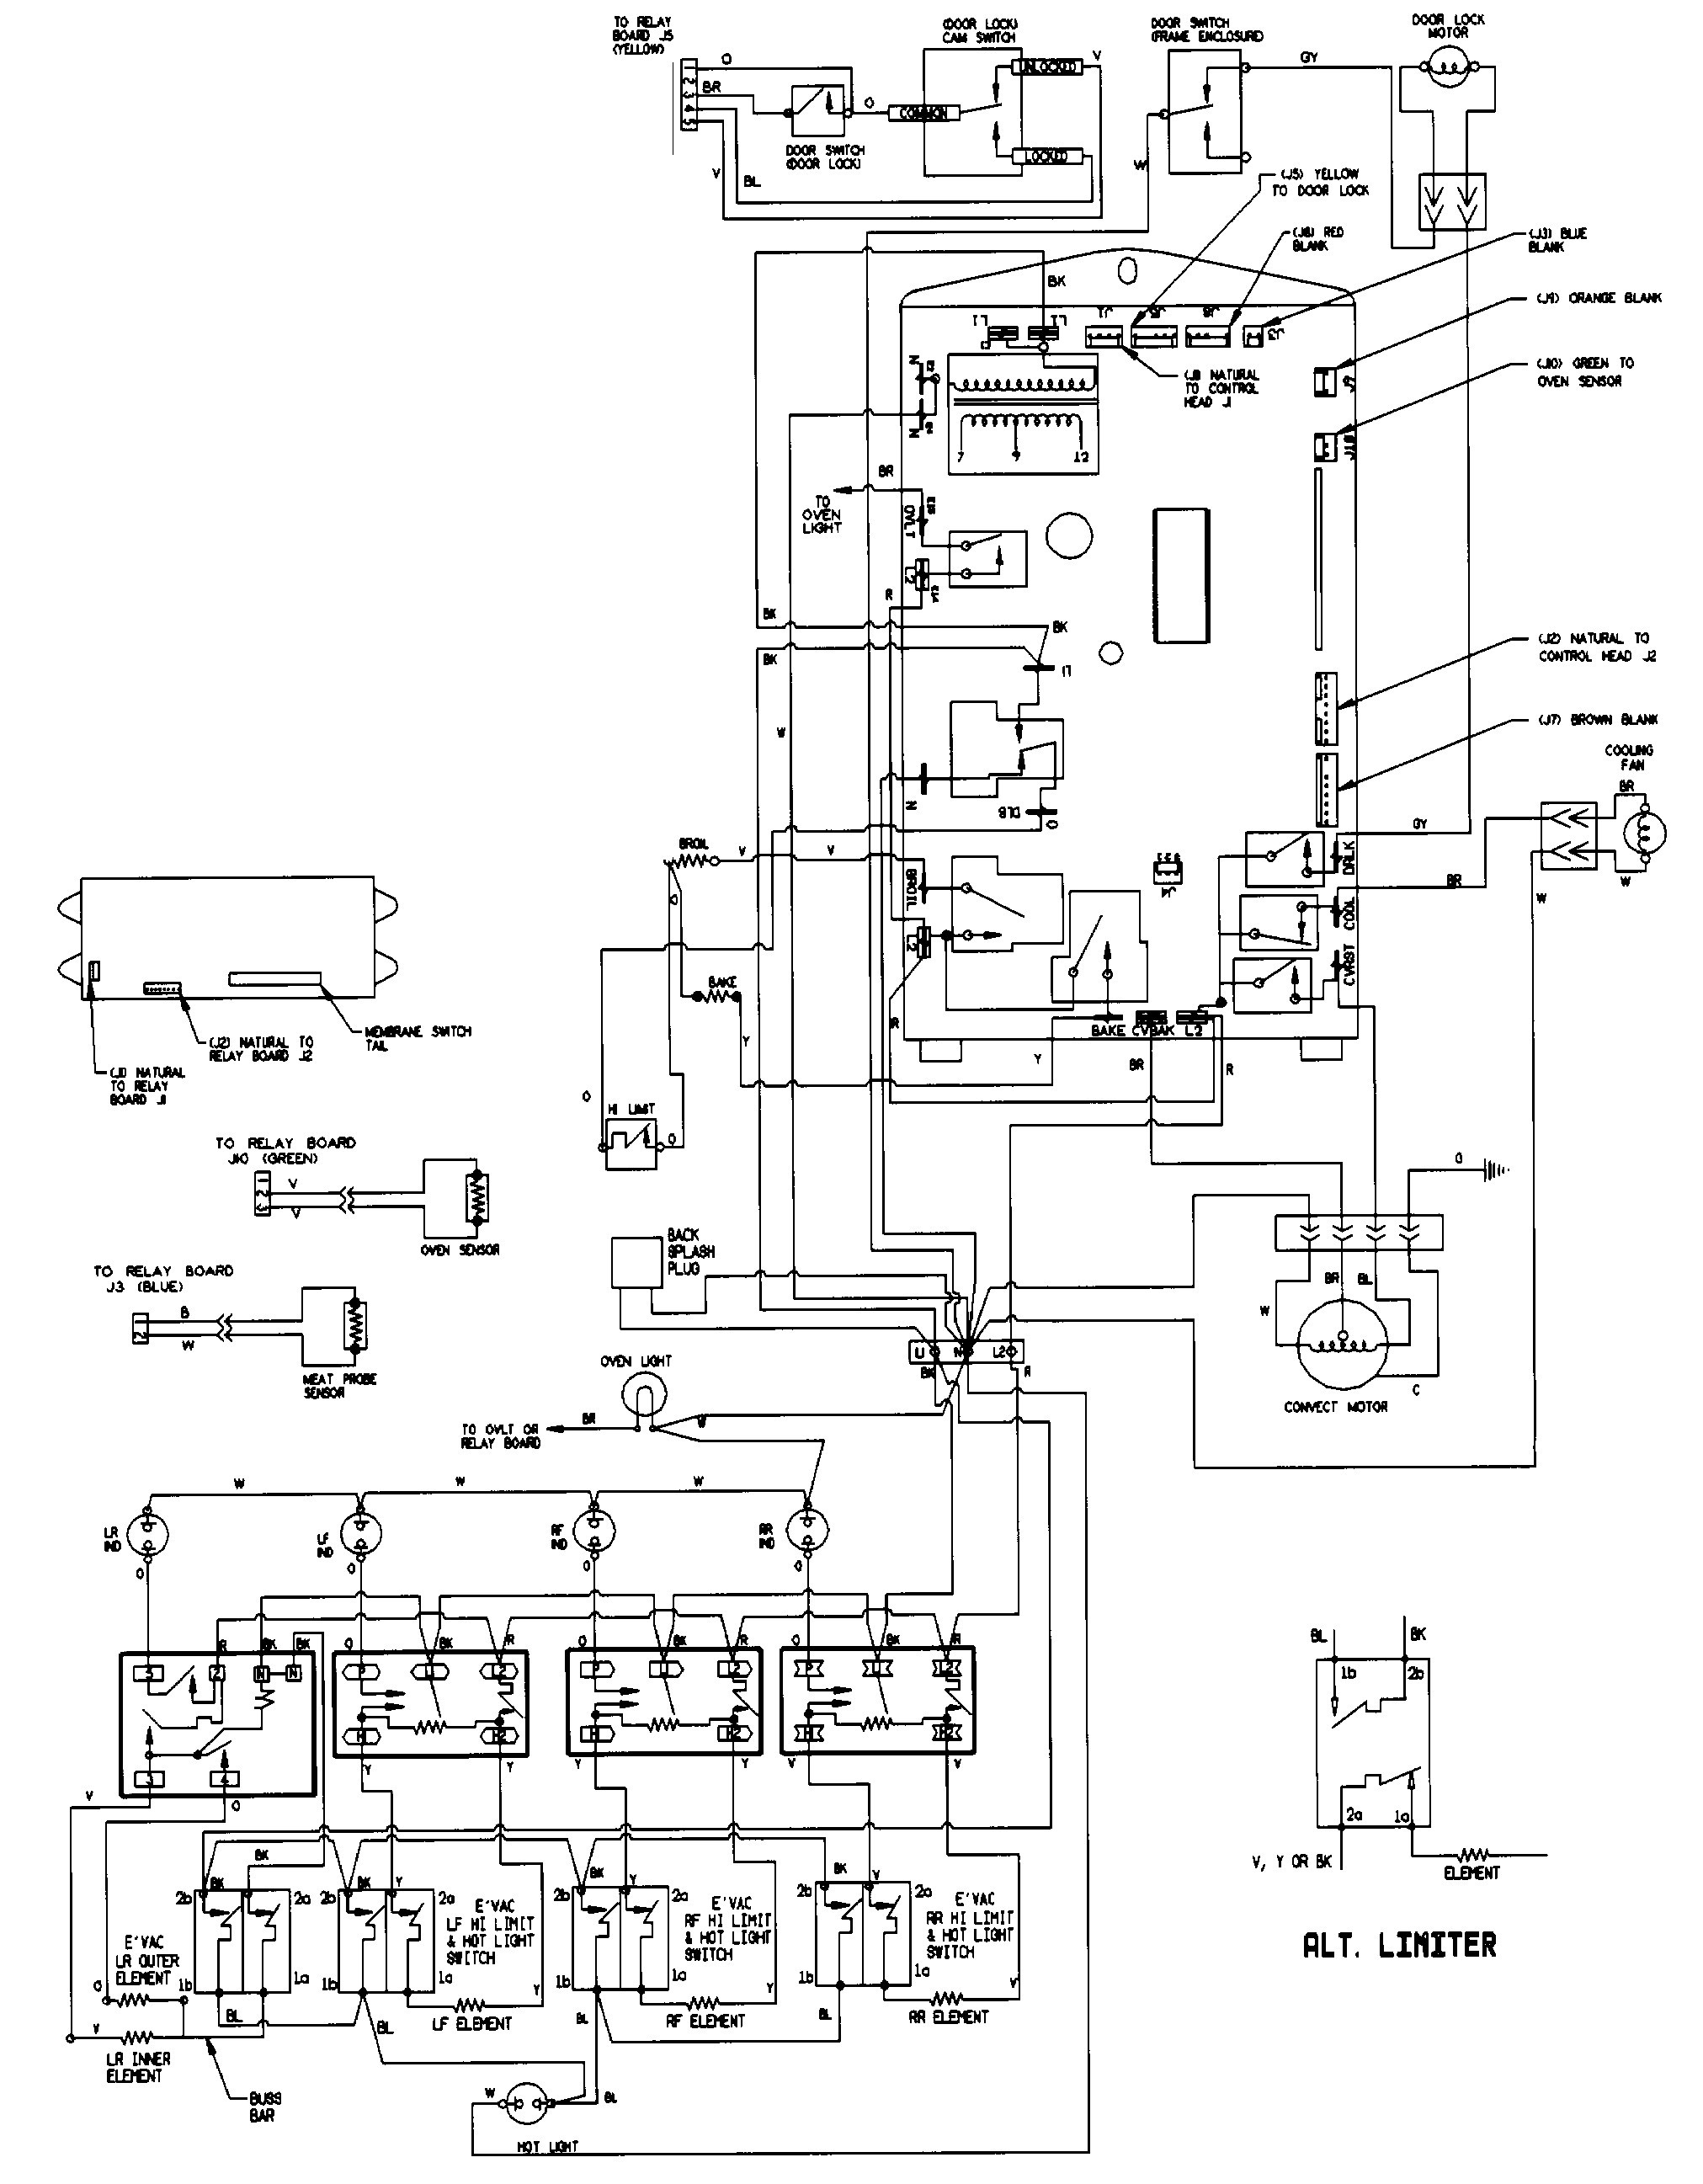 34 Commercial Defrost Timer Wiring Diagram